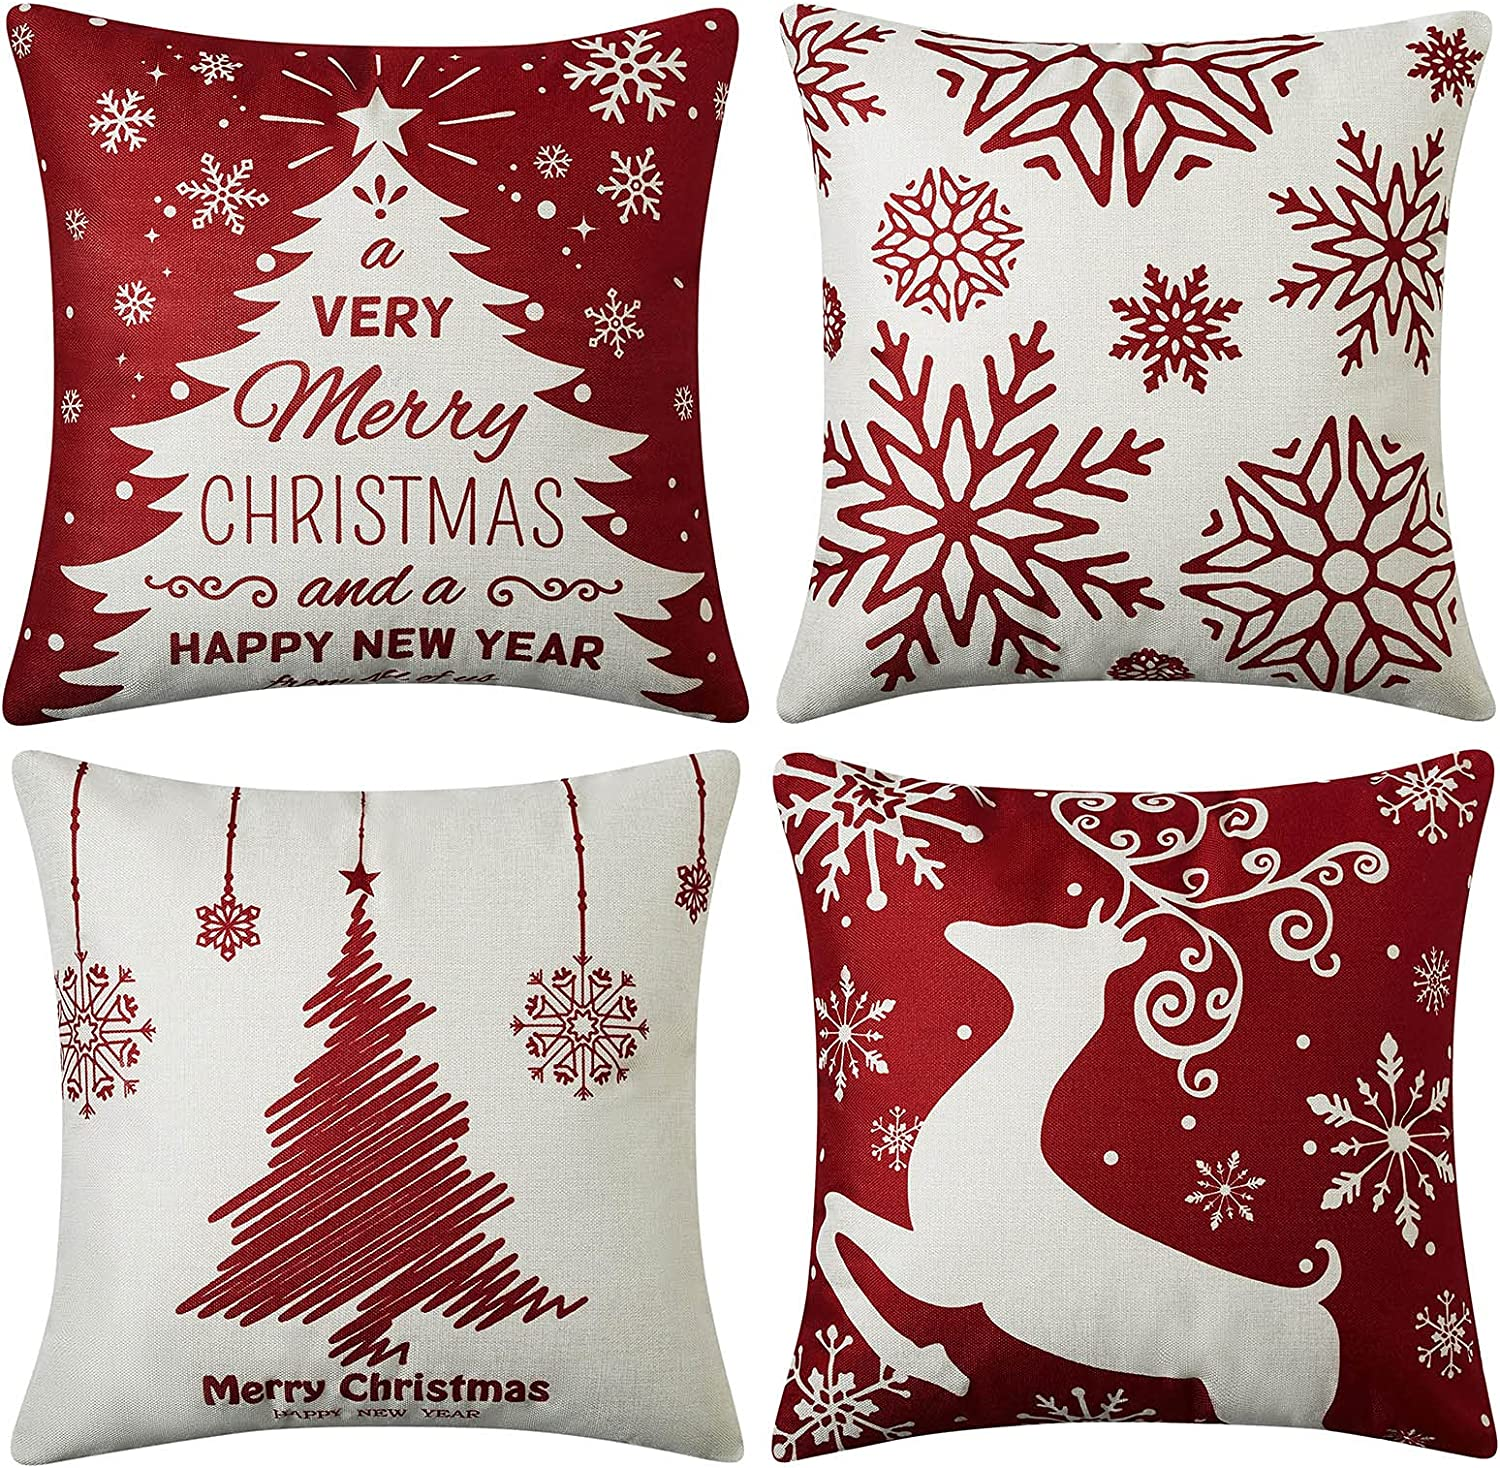 CAROMIO Christmas Decorations Pillow Covers 18x18 Set of 4,Farmhouse Christmas Decor for Home,Tree Deer Snowflakes Rustic Xmas Pillow Case Winter Holiday Decorations Throw Cushion Case for Home Couch